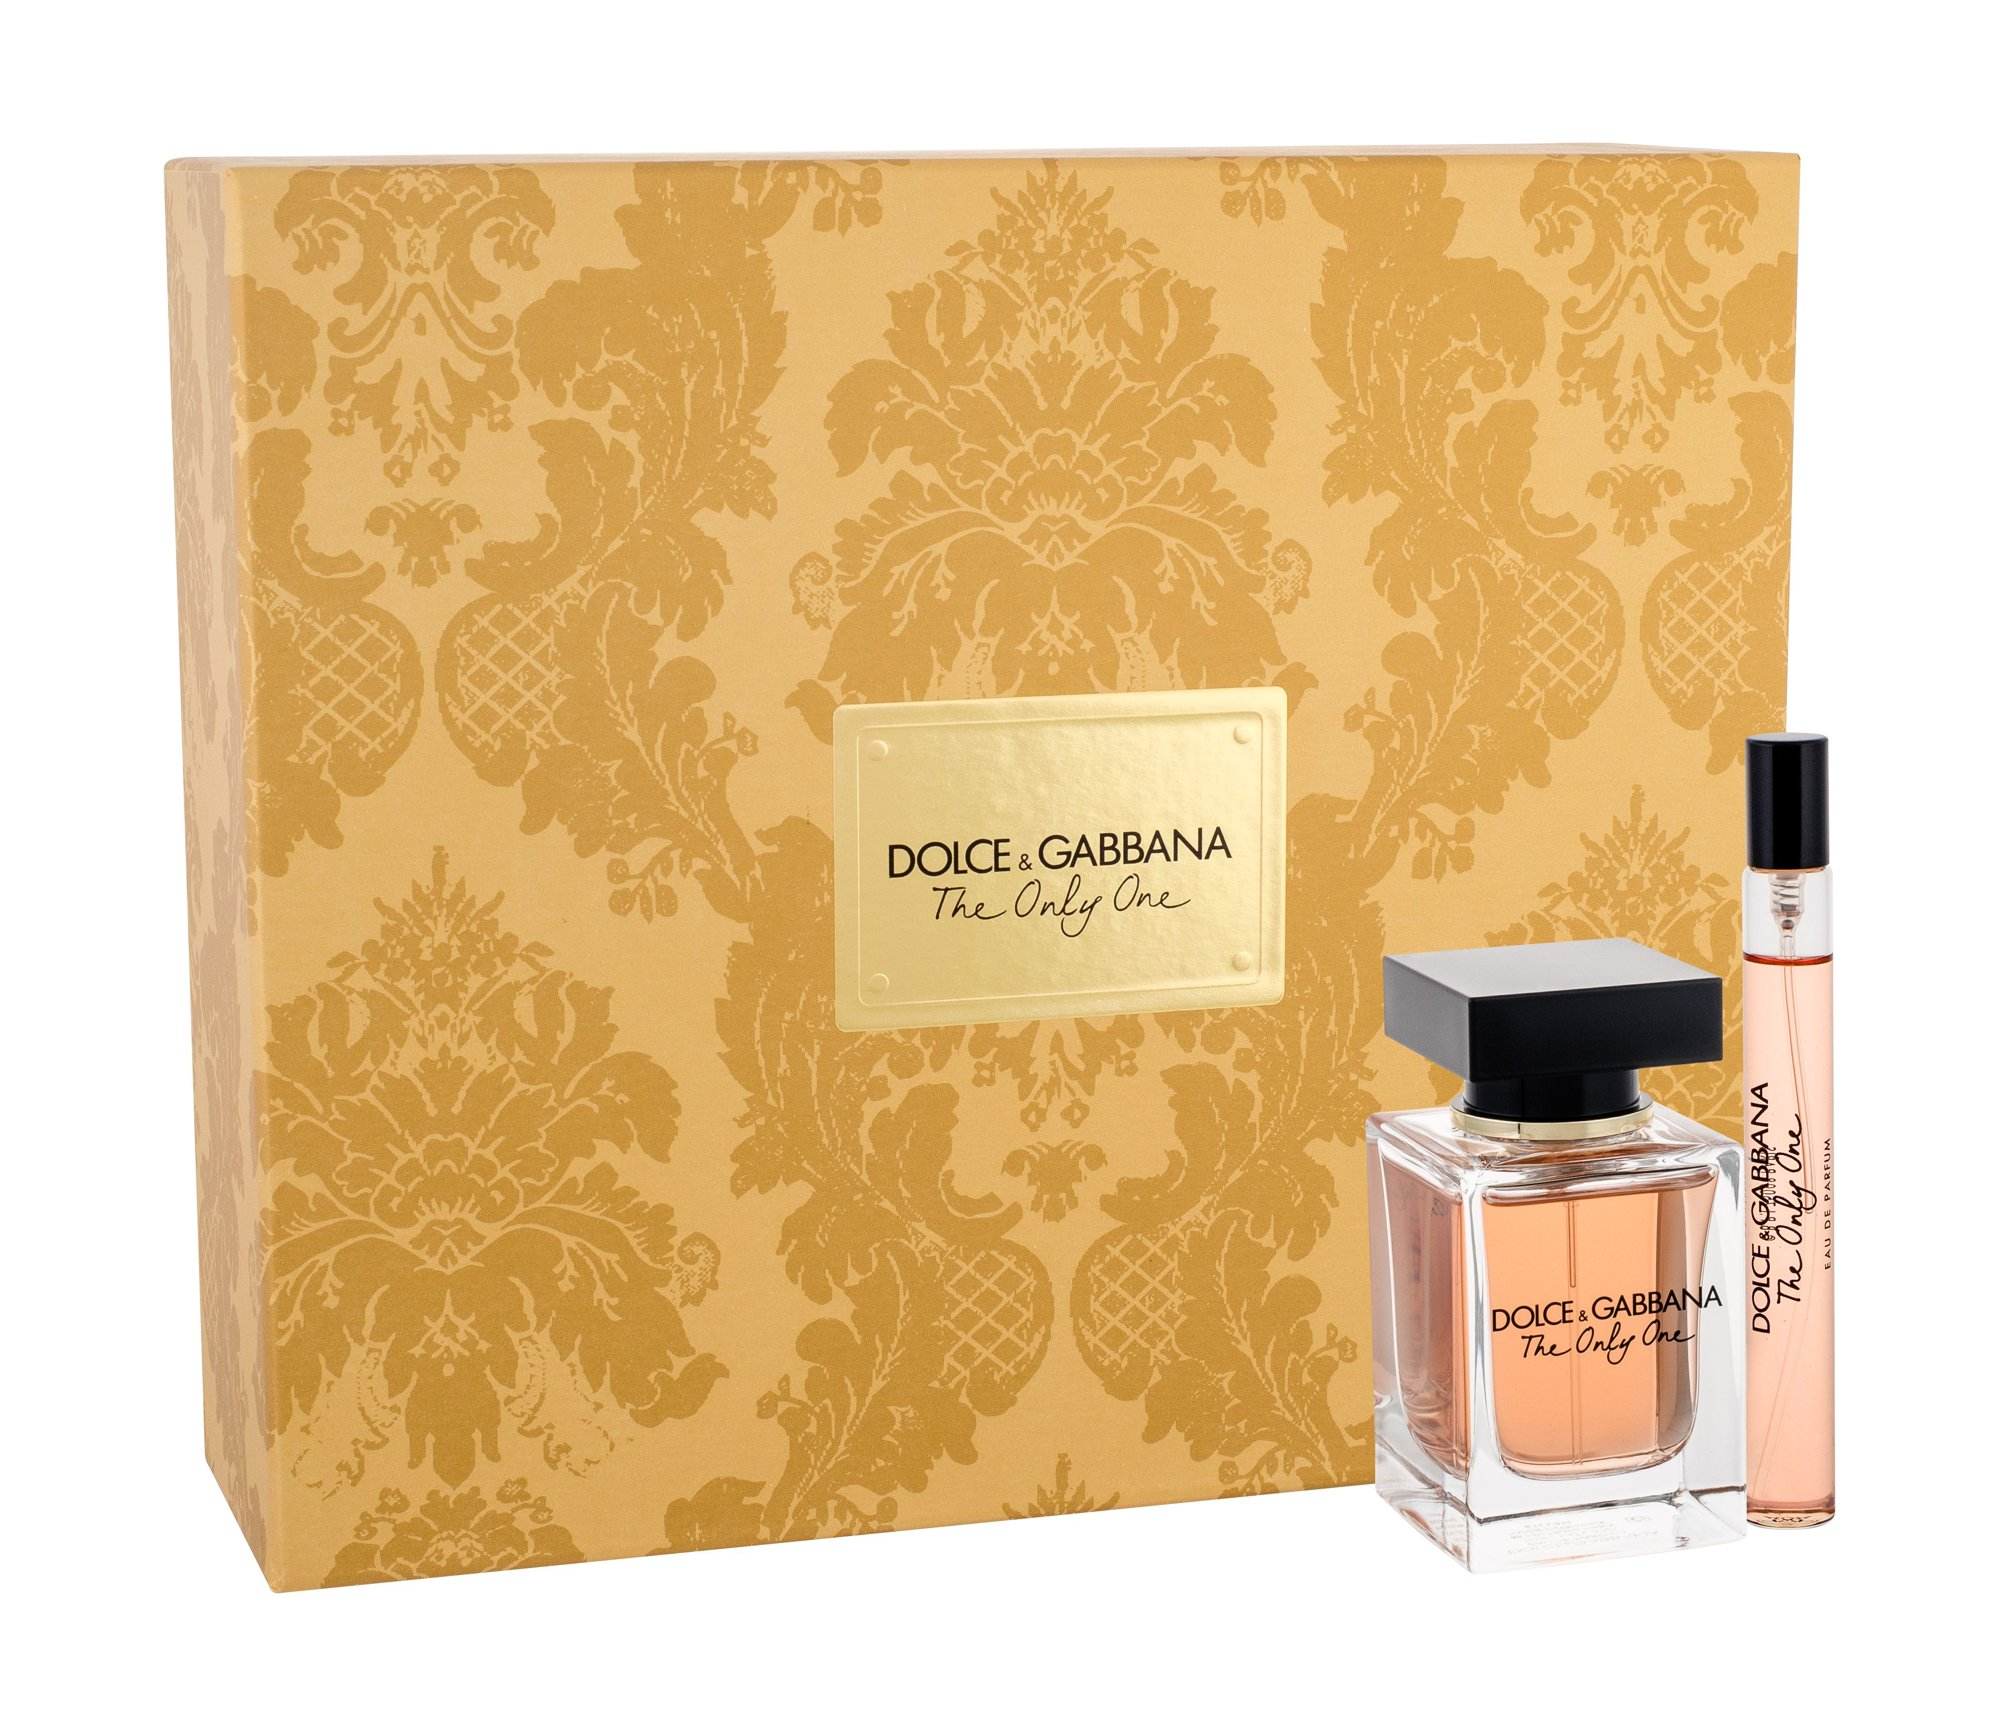 Dolce&Gabbana The Only One Eau de Parfum 50ml